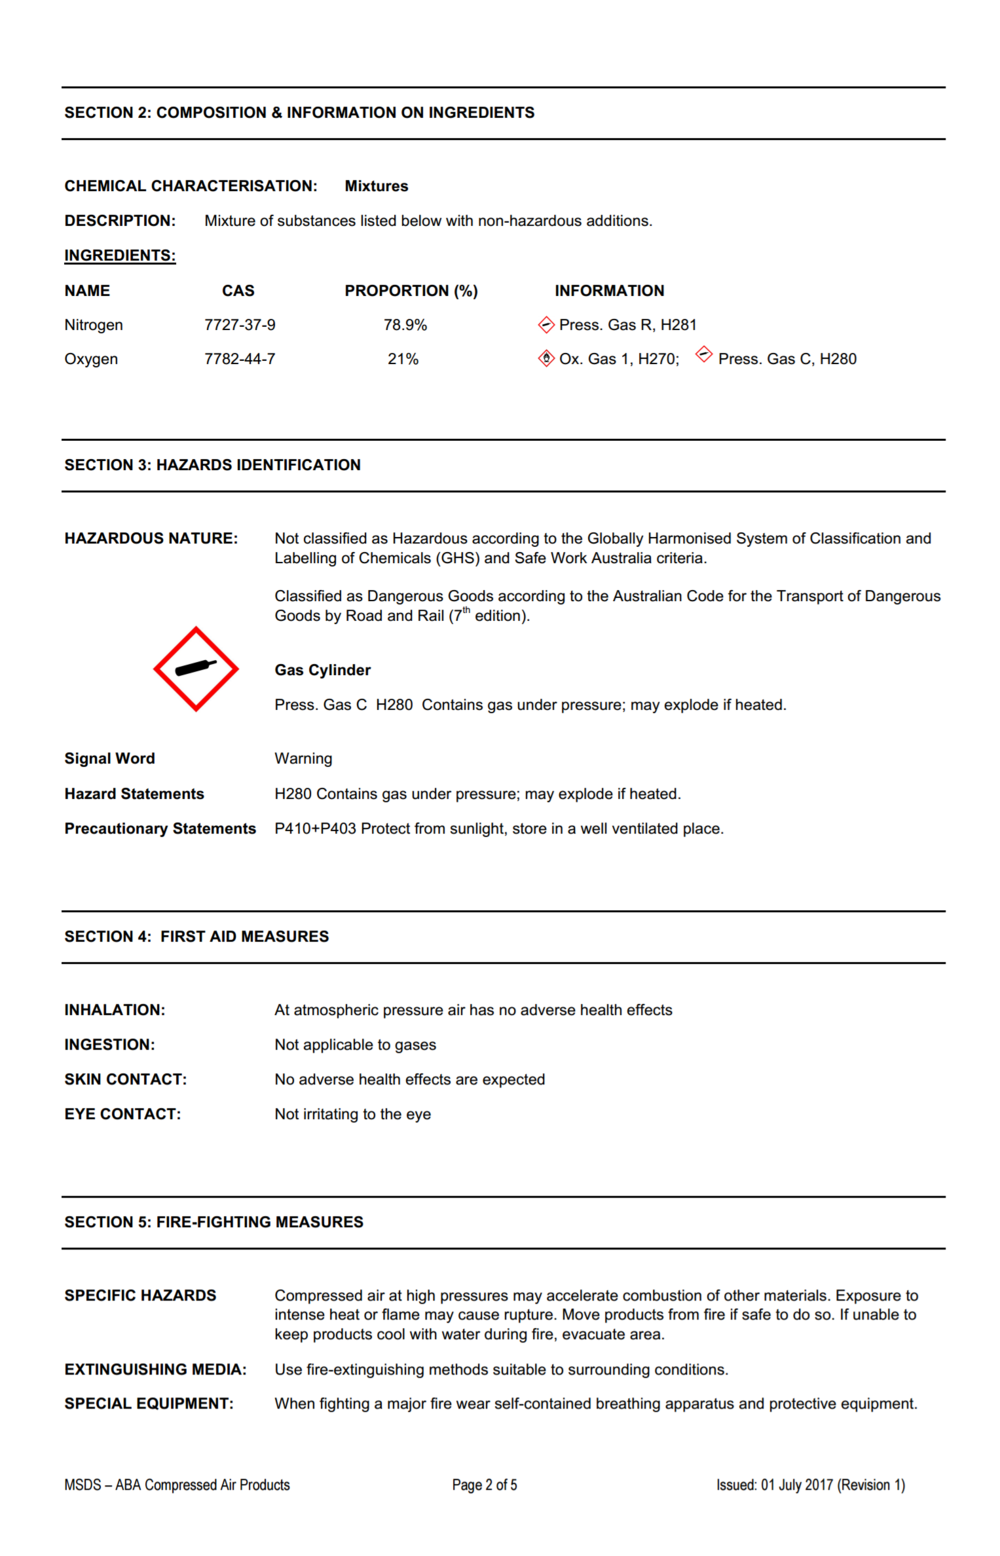 MSDS - ABA Compressed Air (page2).png